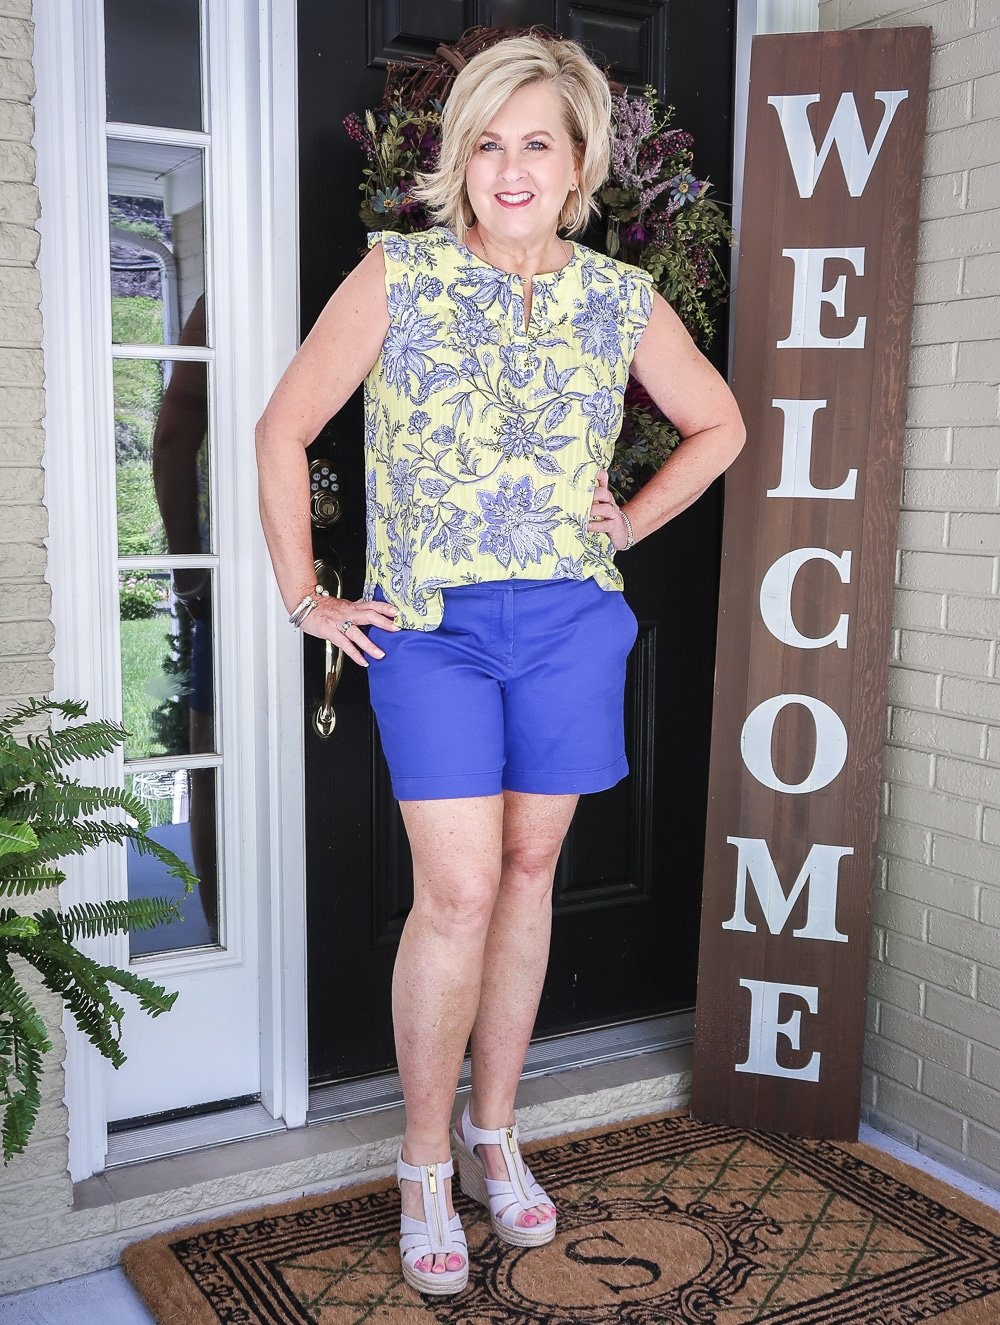 Fashion Blogger 50 Is Not Old wearing a yellow top with a floral design, azure blue shorts, and platform espadrille wedge shoes by Micheal Kors